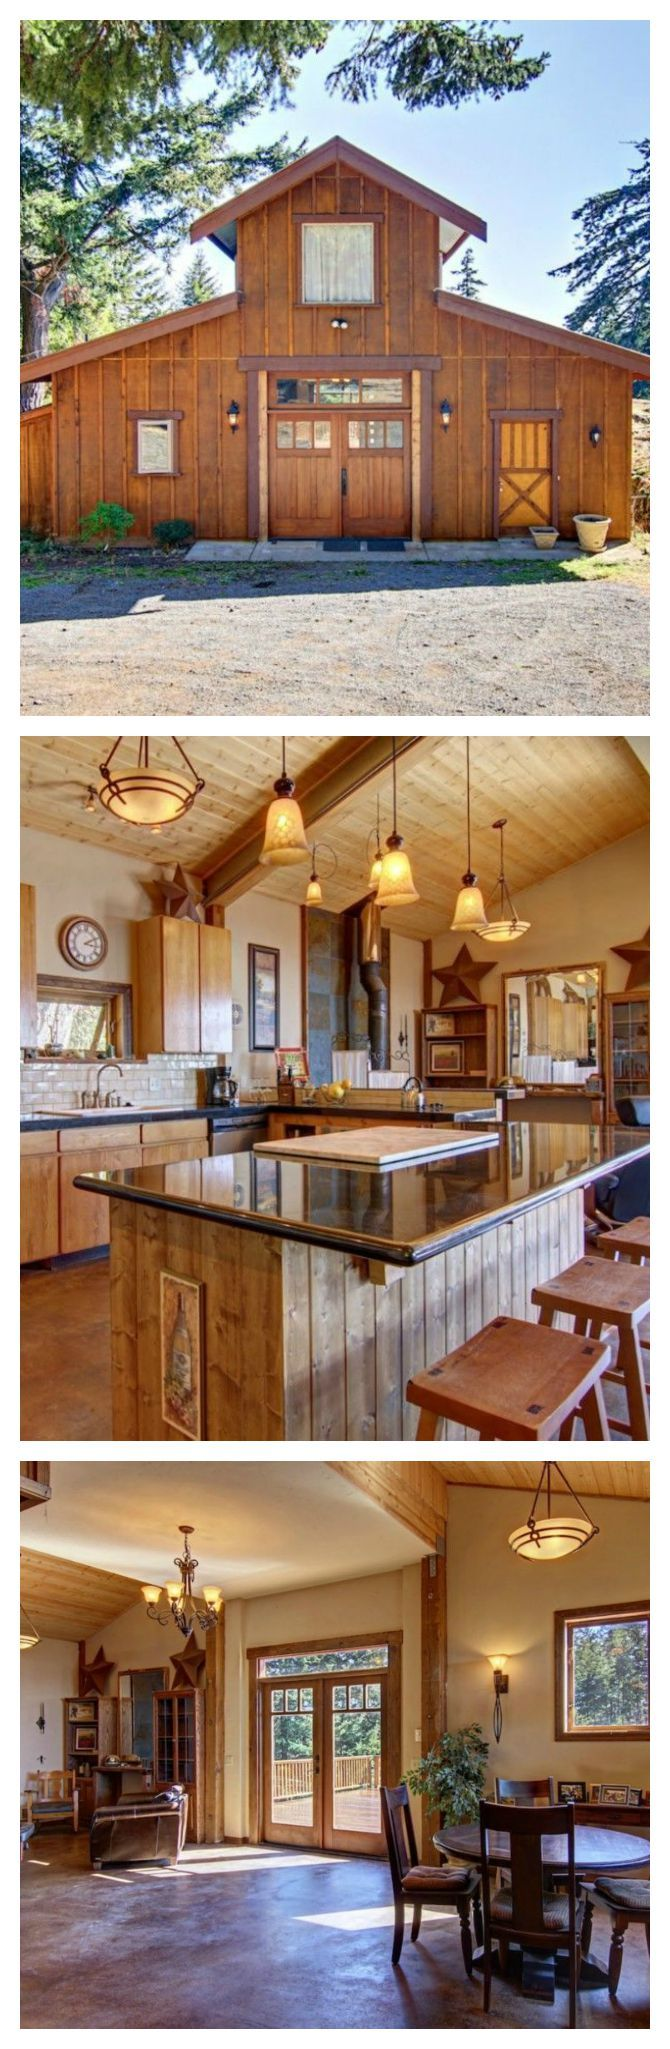 This gorgeous converted barn home has three bedrooms, and sits on 14 beautiful acres of property.